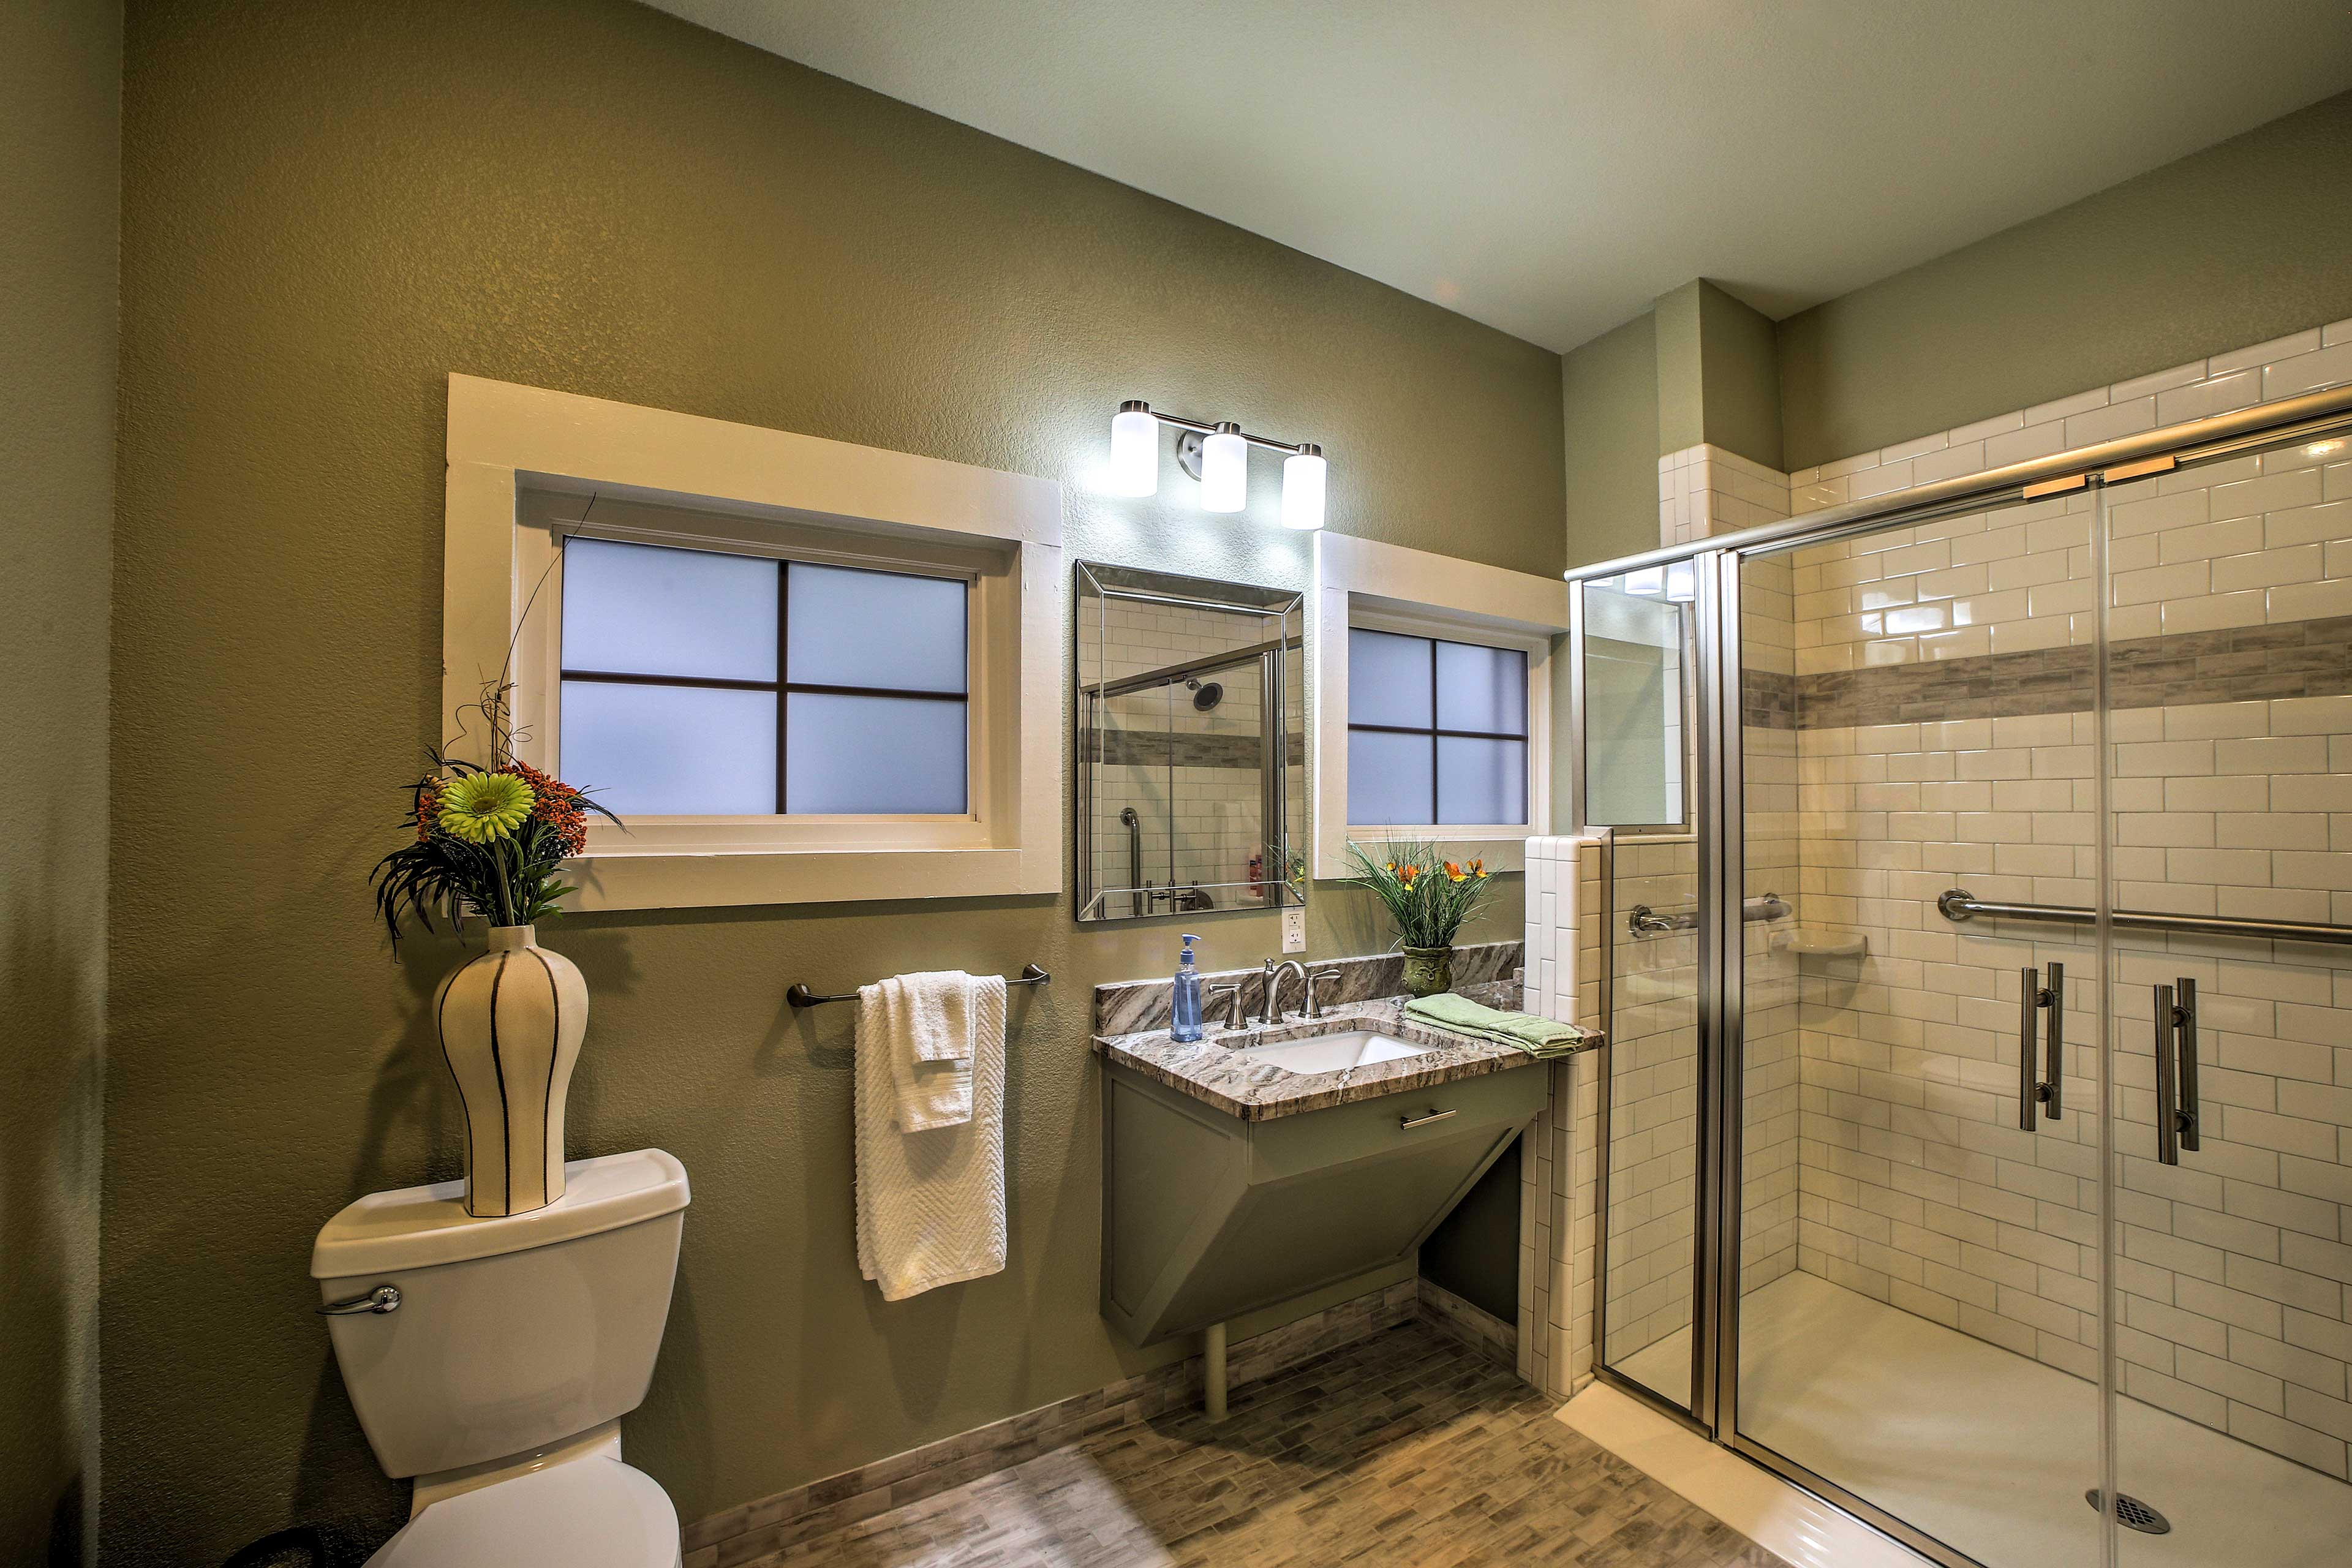 Rinse off before bed in the pristine full bathroom.